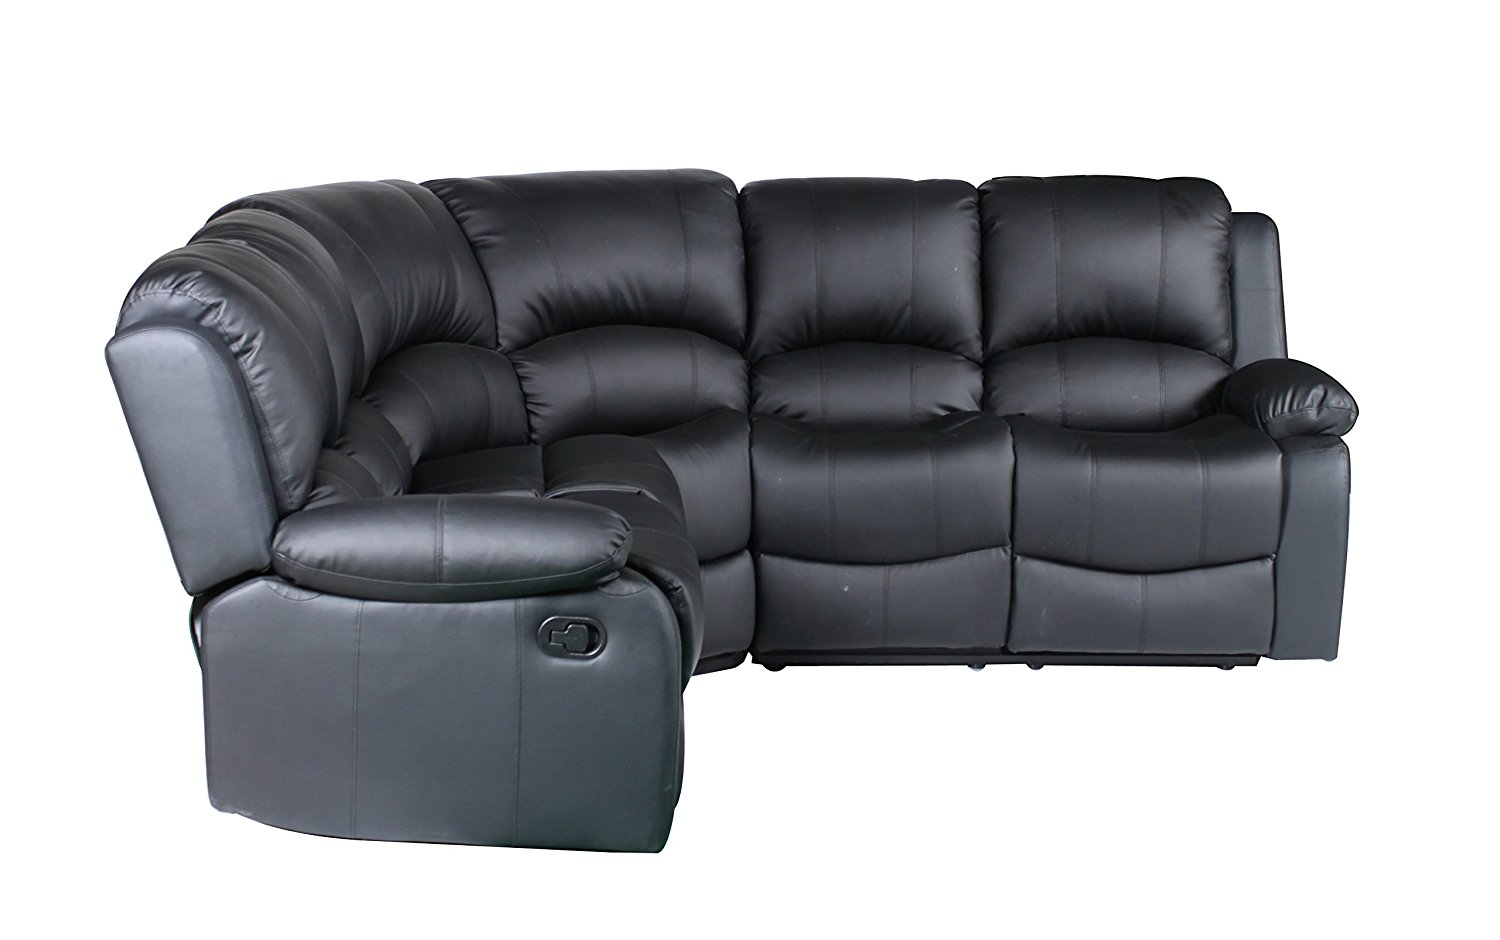 Extra Large Leather Reclining Corner Sectional Sofa For Large Families Cherry Brown Or Onyx